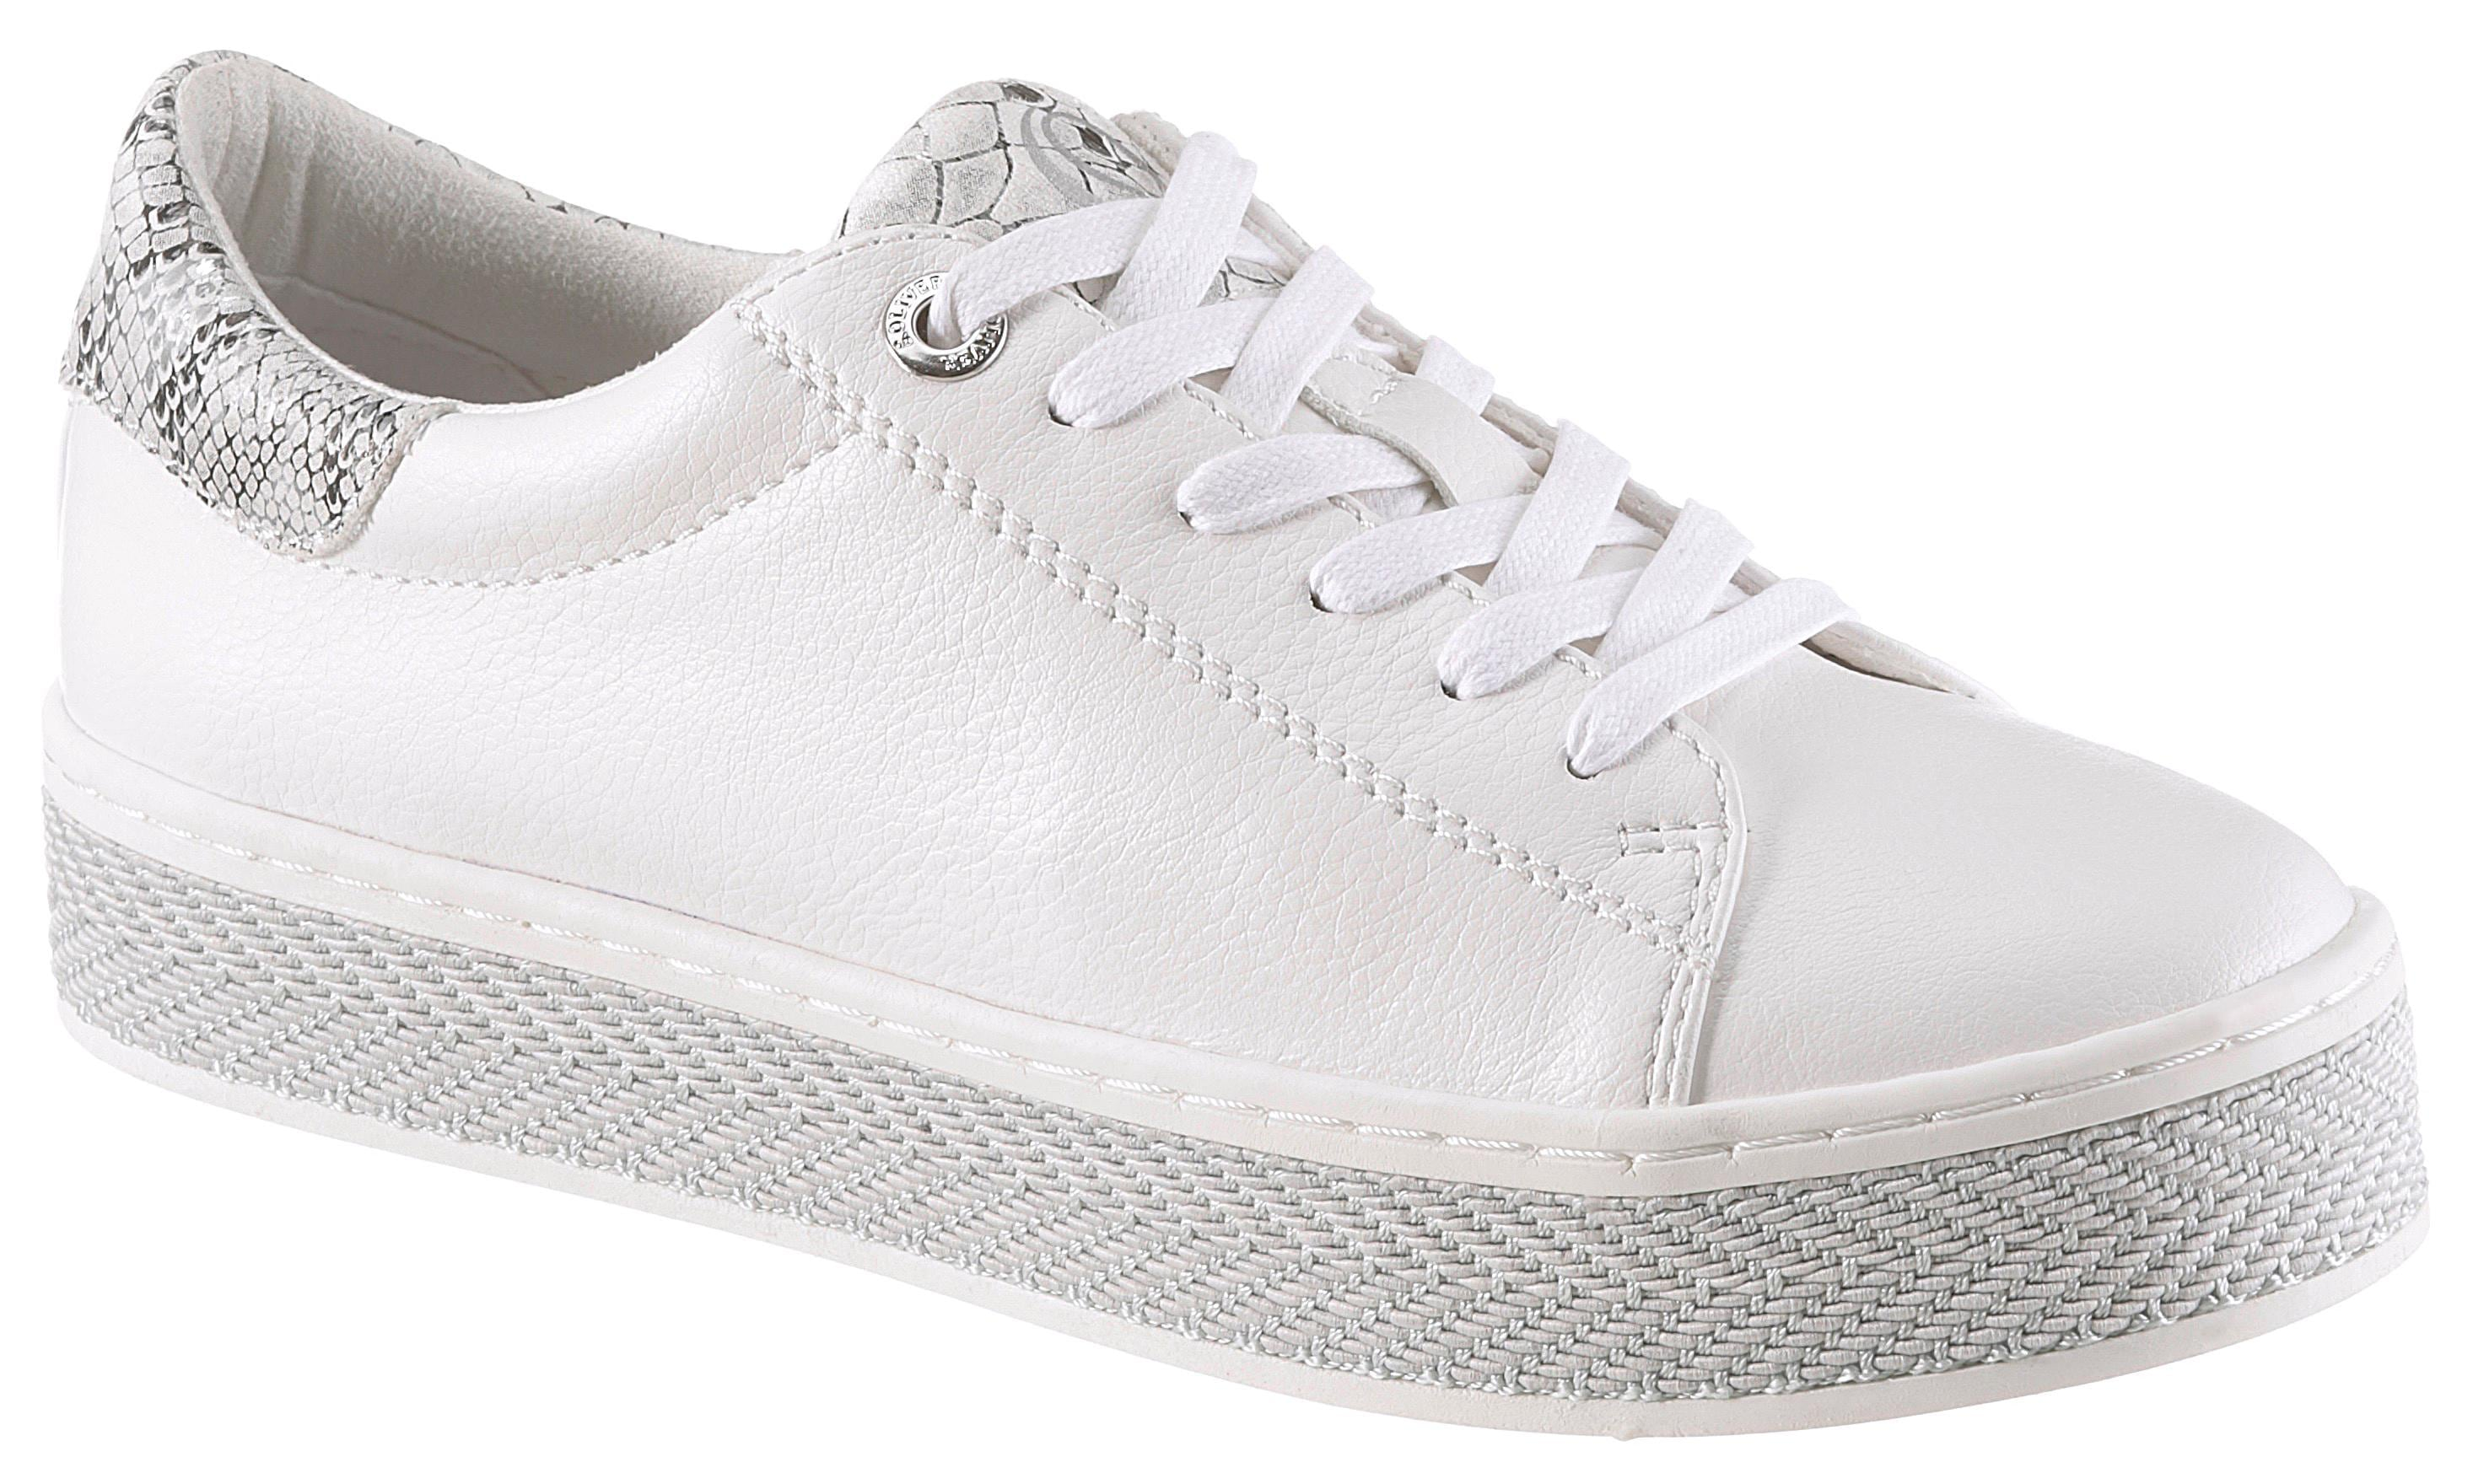 s.Oliver RED LABEL Plateausneaker | Schuhe > Sneaker > Plateau Sneaker | Weiß | S.OLIVER RED LABEL